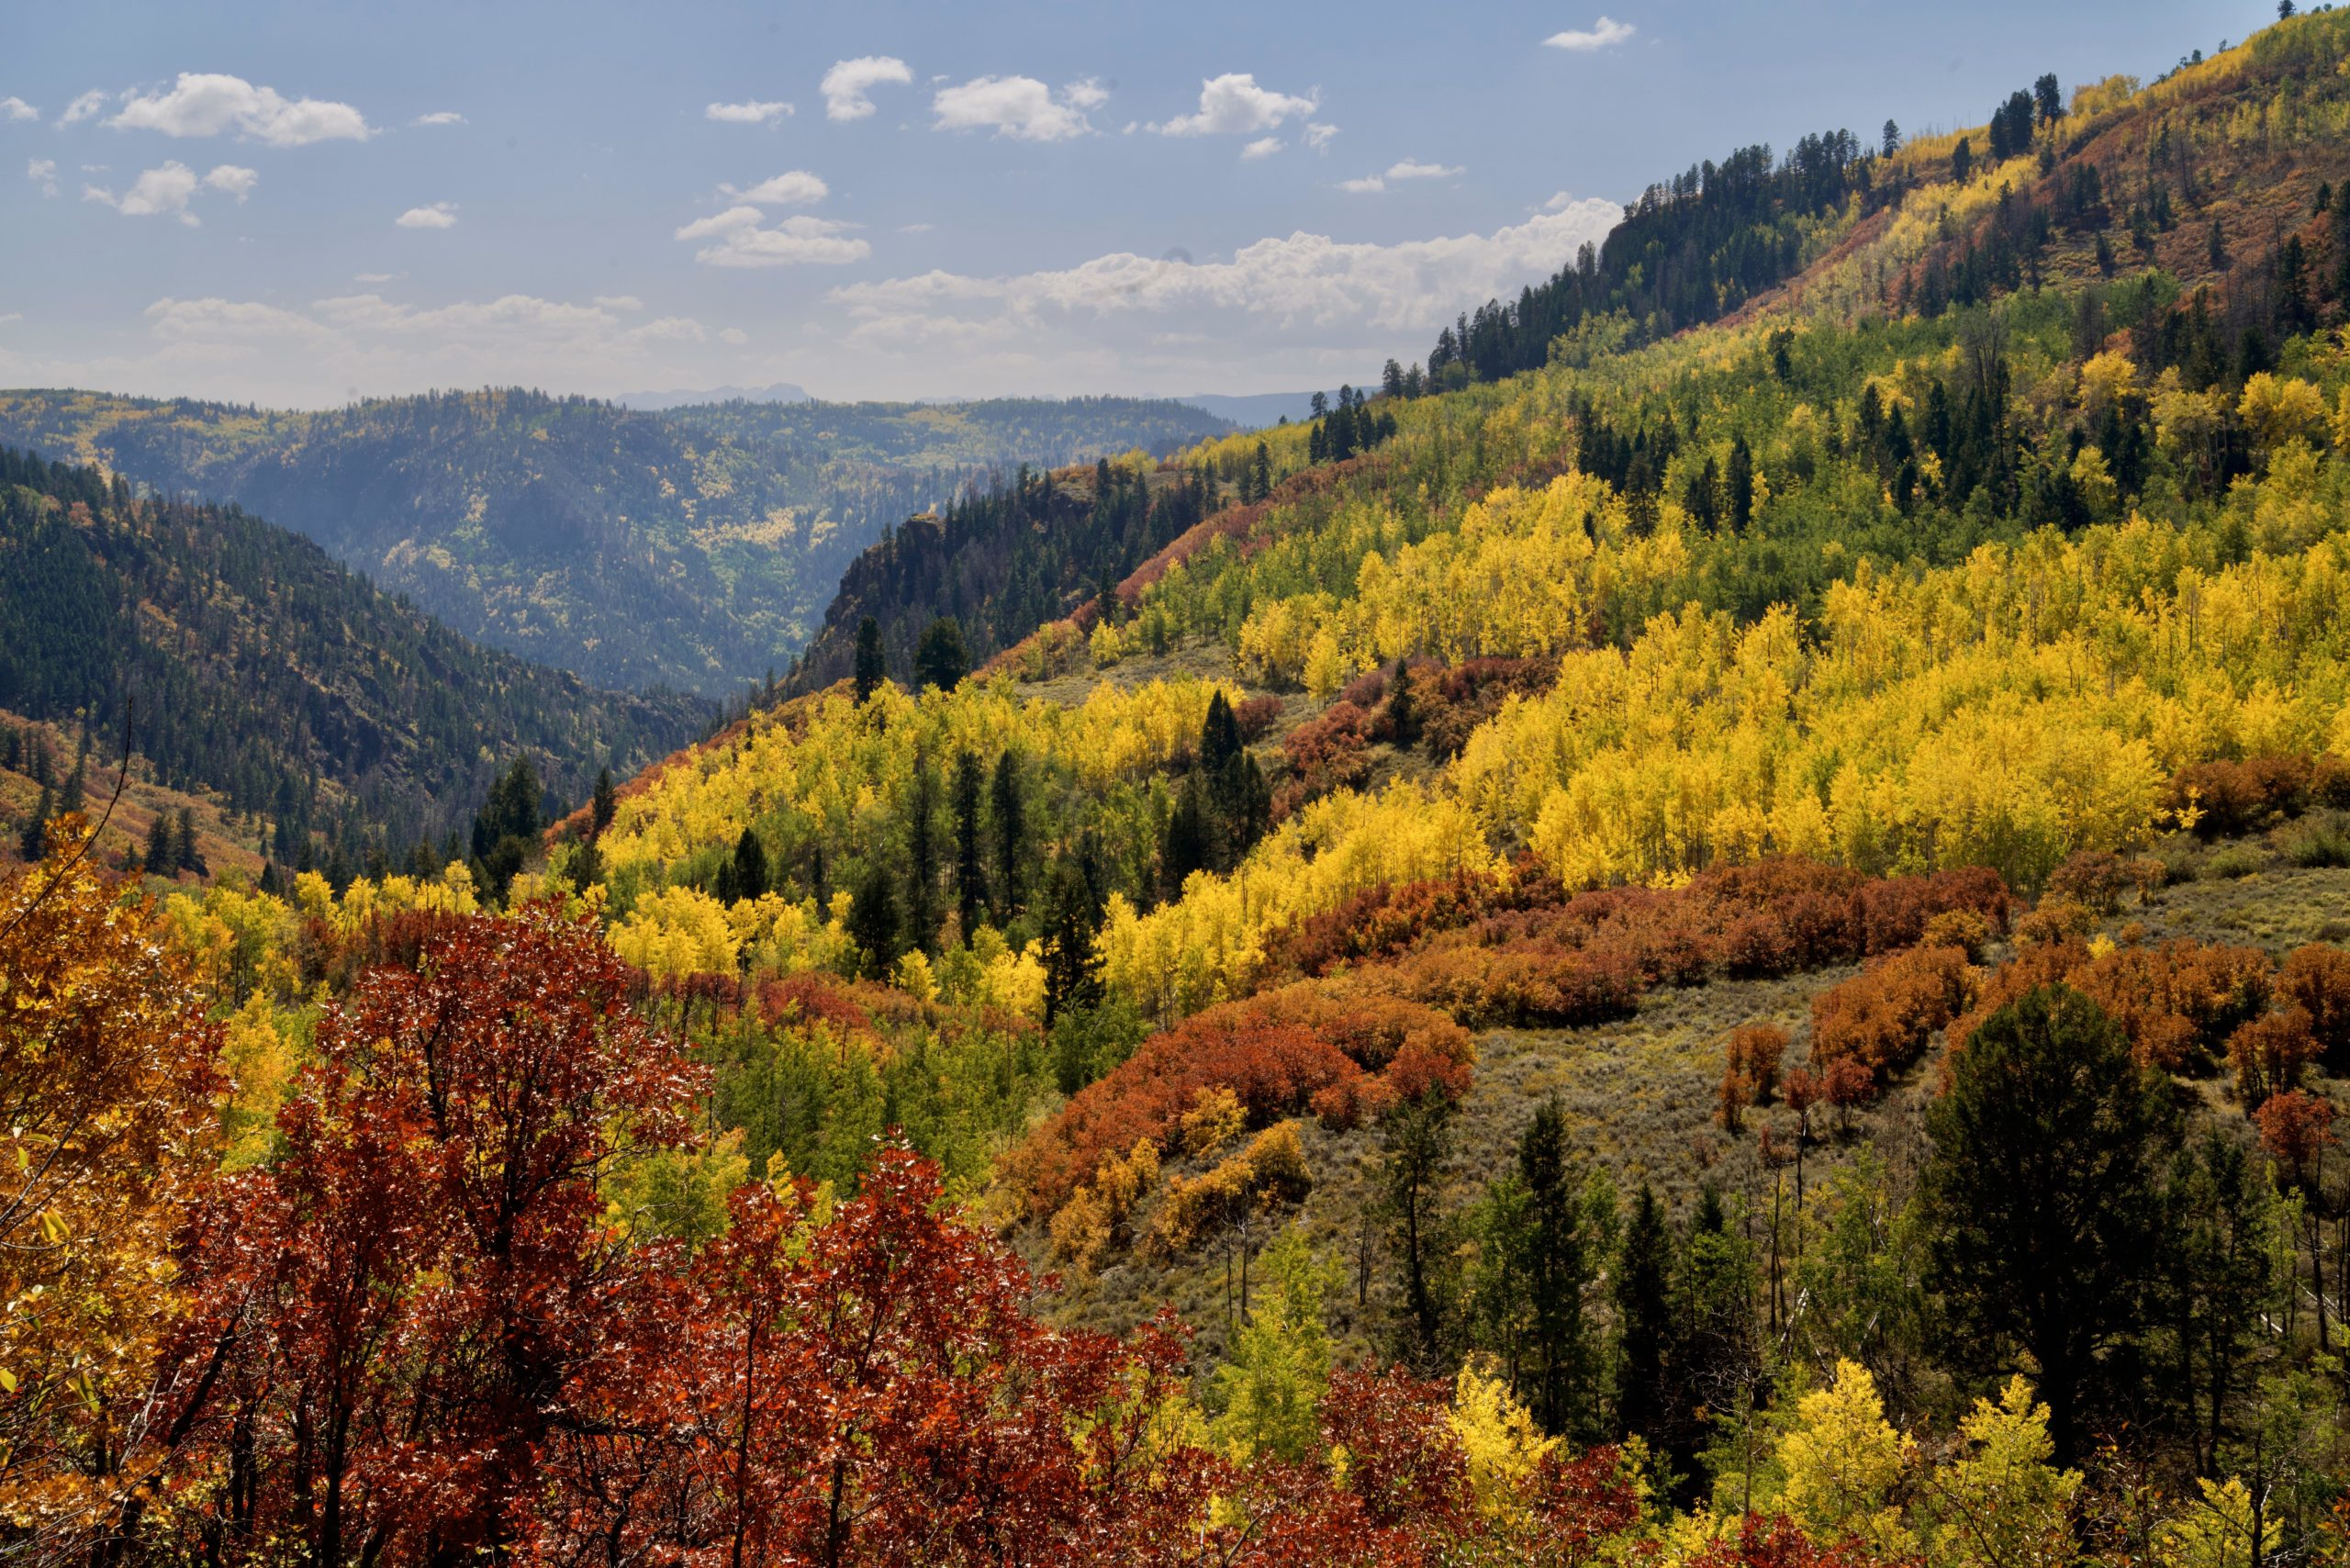 Colorado is wondering if you're tired of fall color posts yet